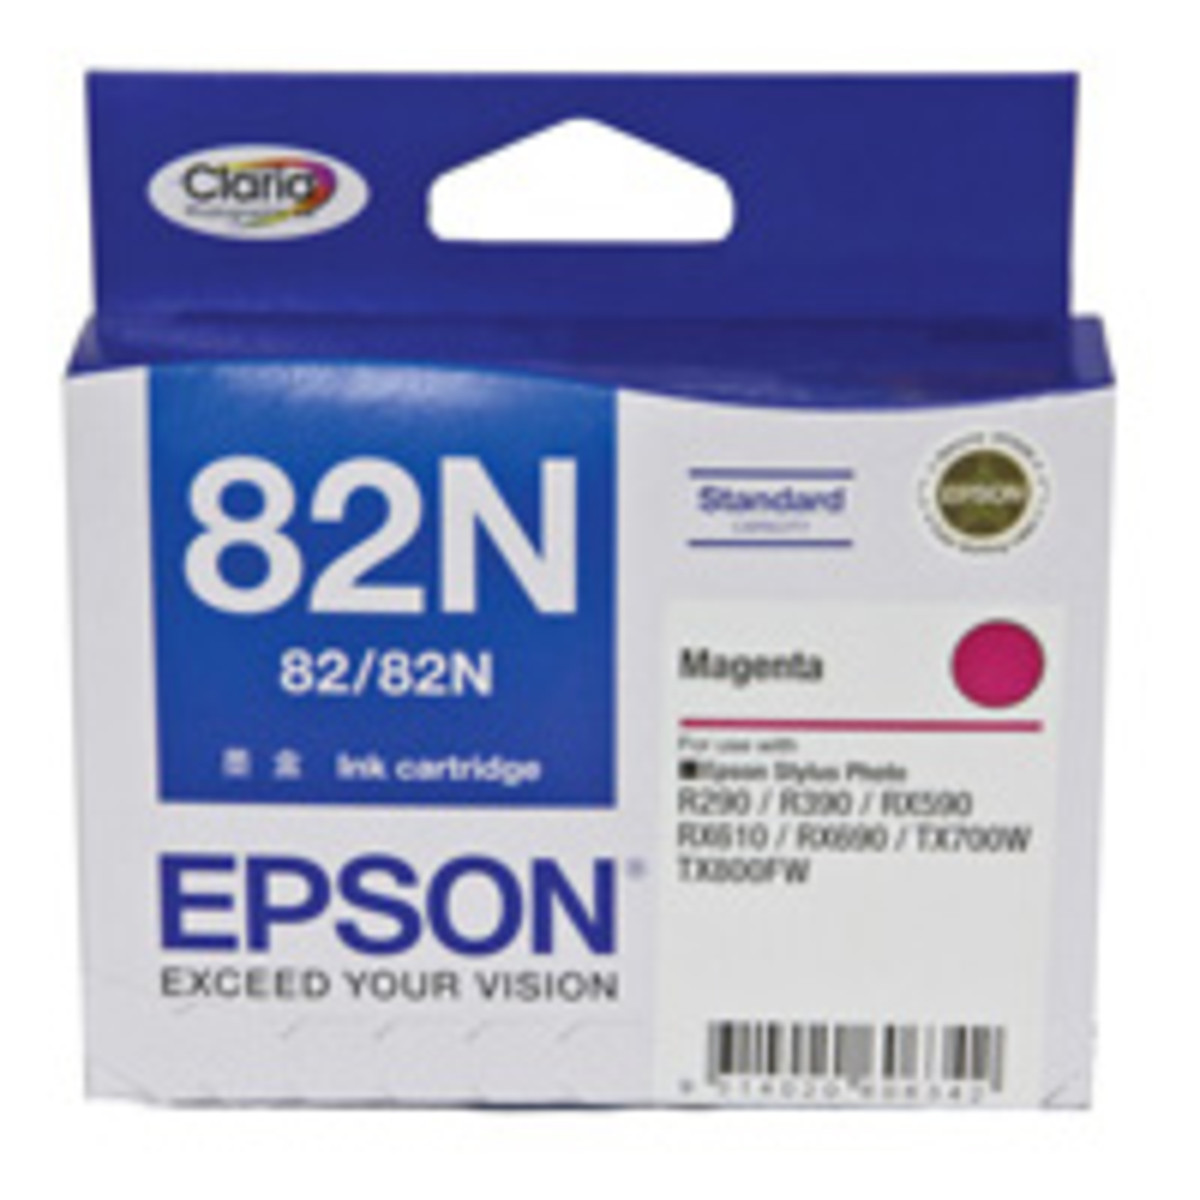 Epson 82N Magenta Ink Cartridge